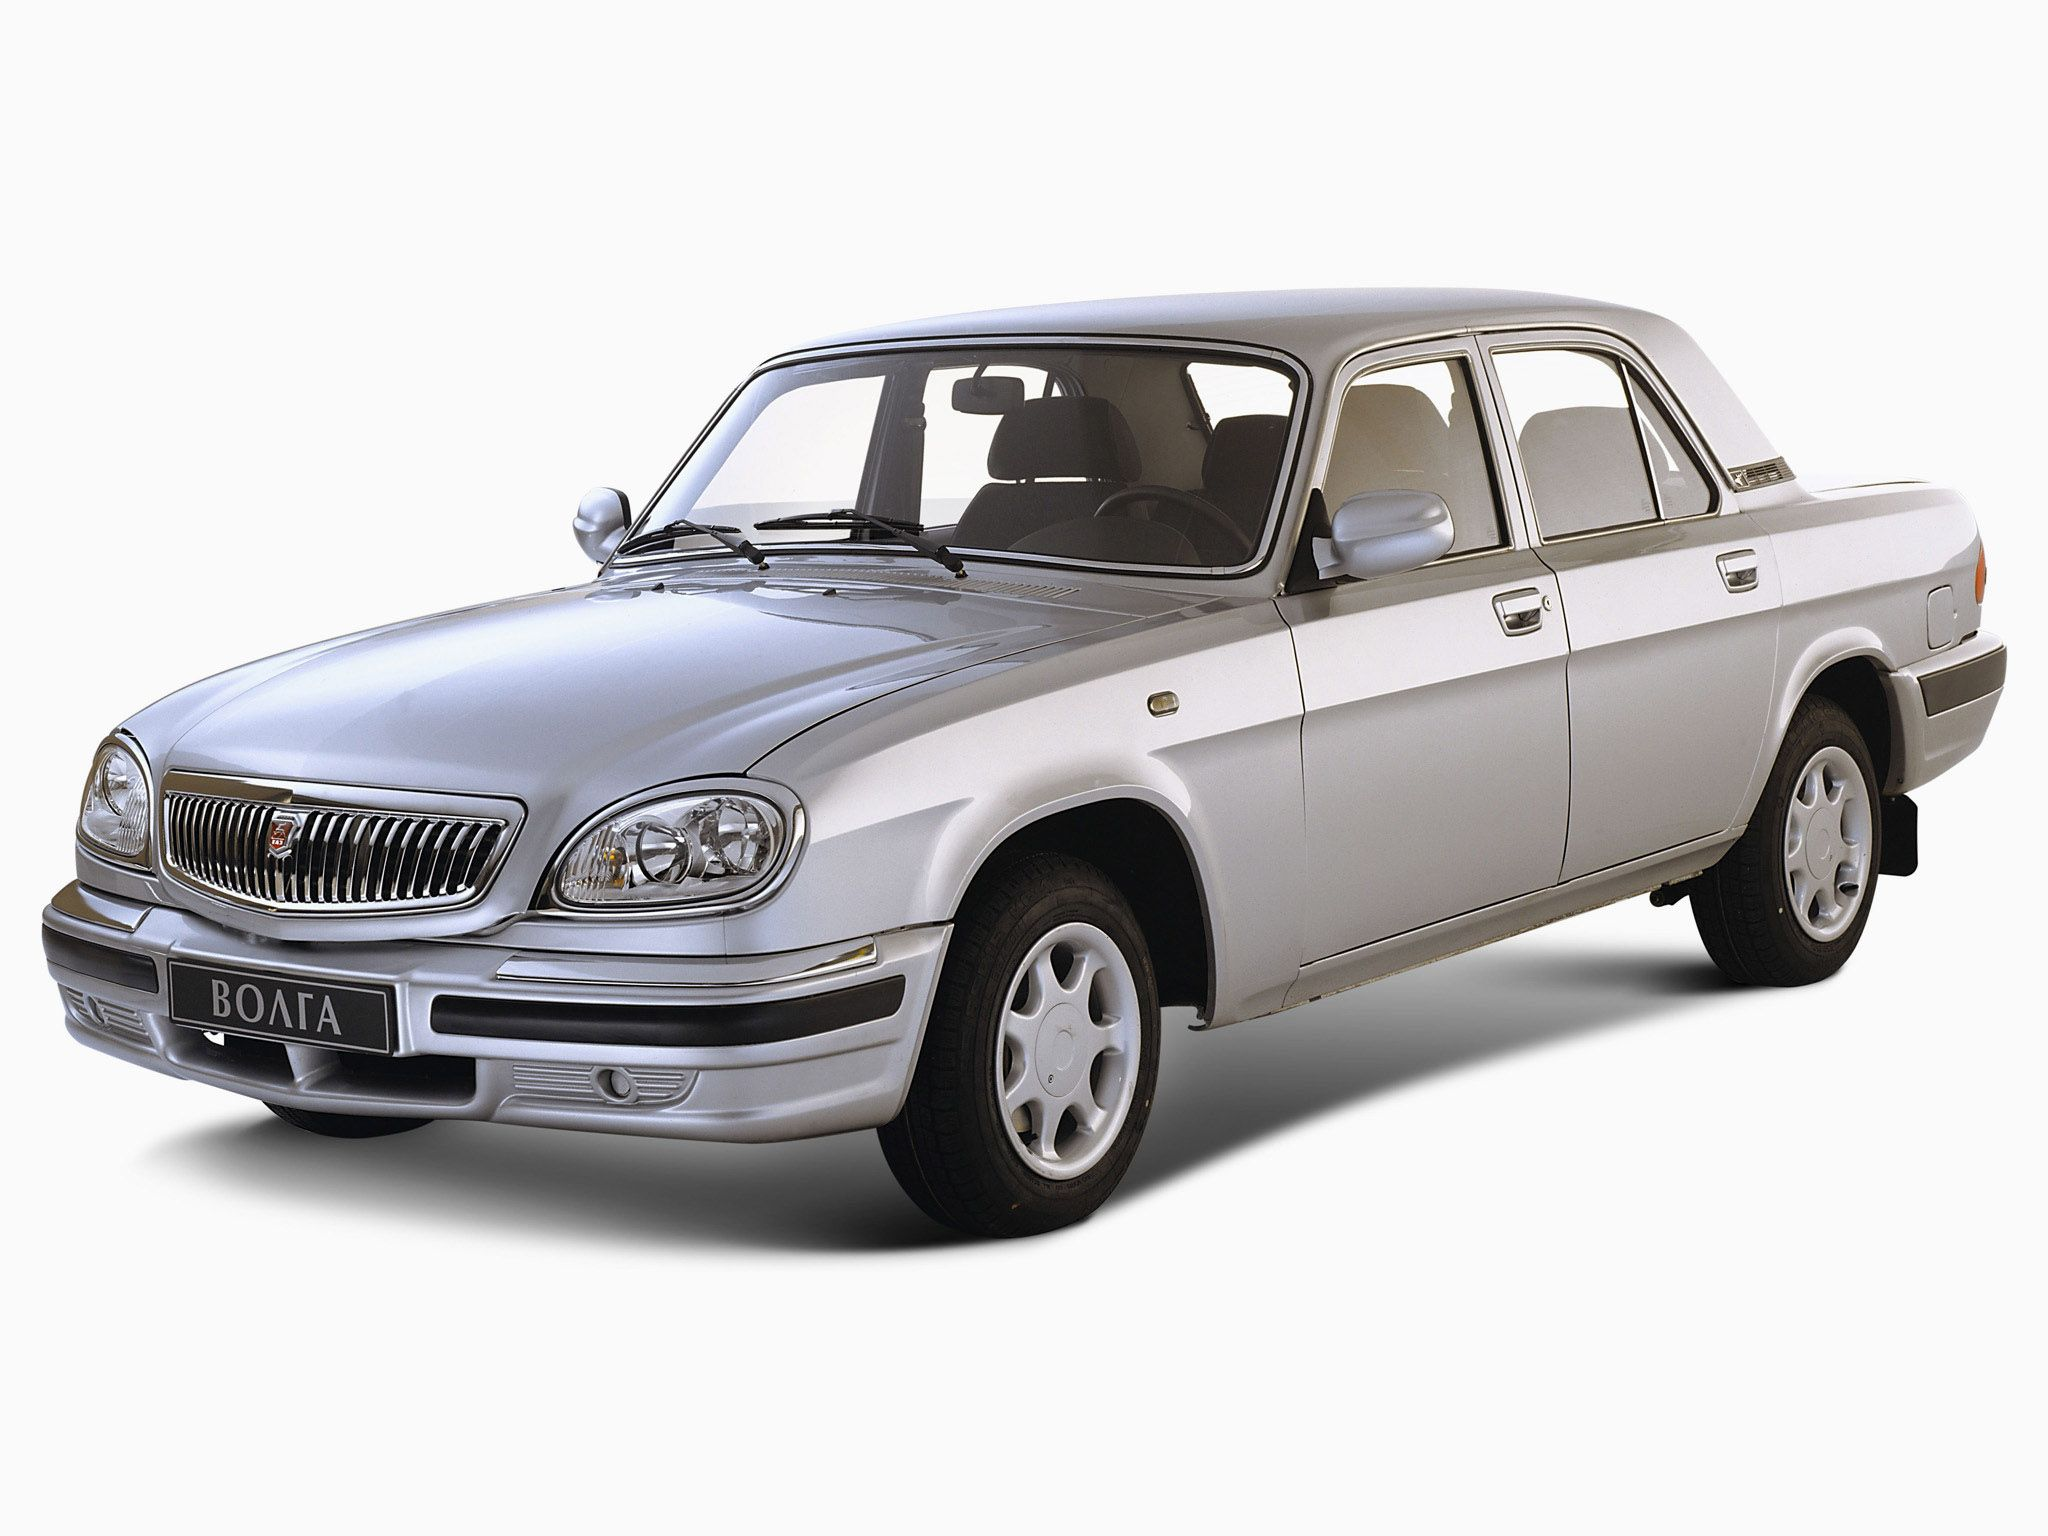 GAZ 31105: specifications, reviews and photos 74